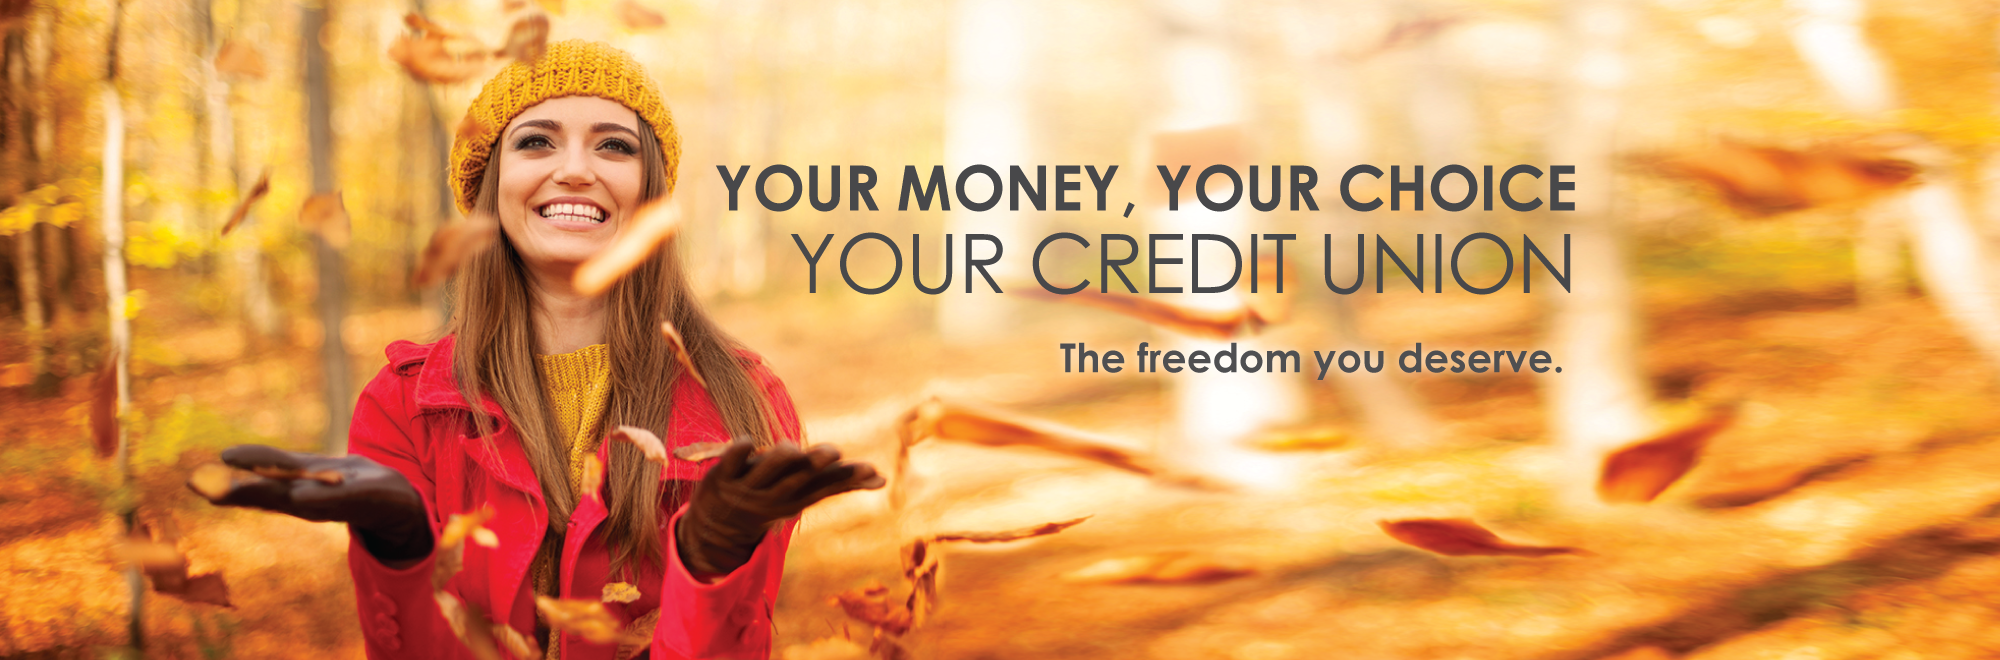 Your Money, Your Choice, Your Credit Union Freedom